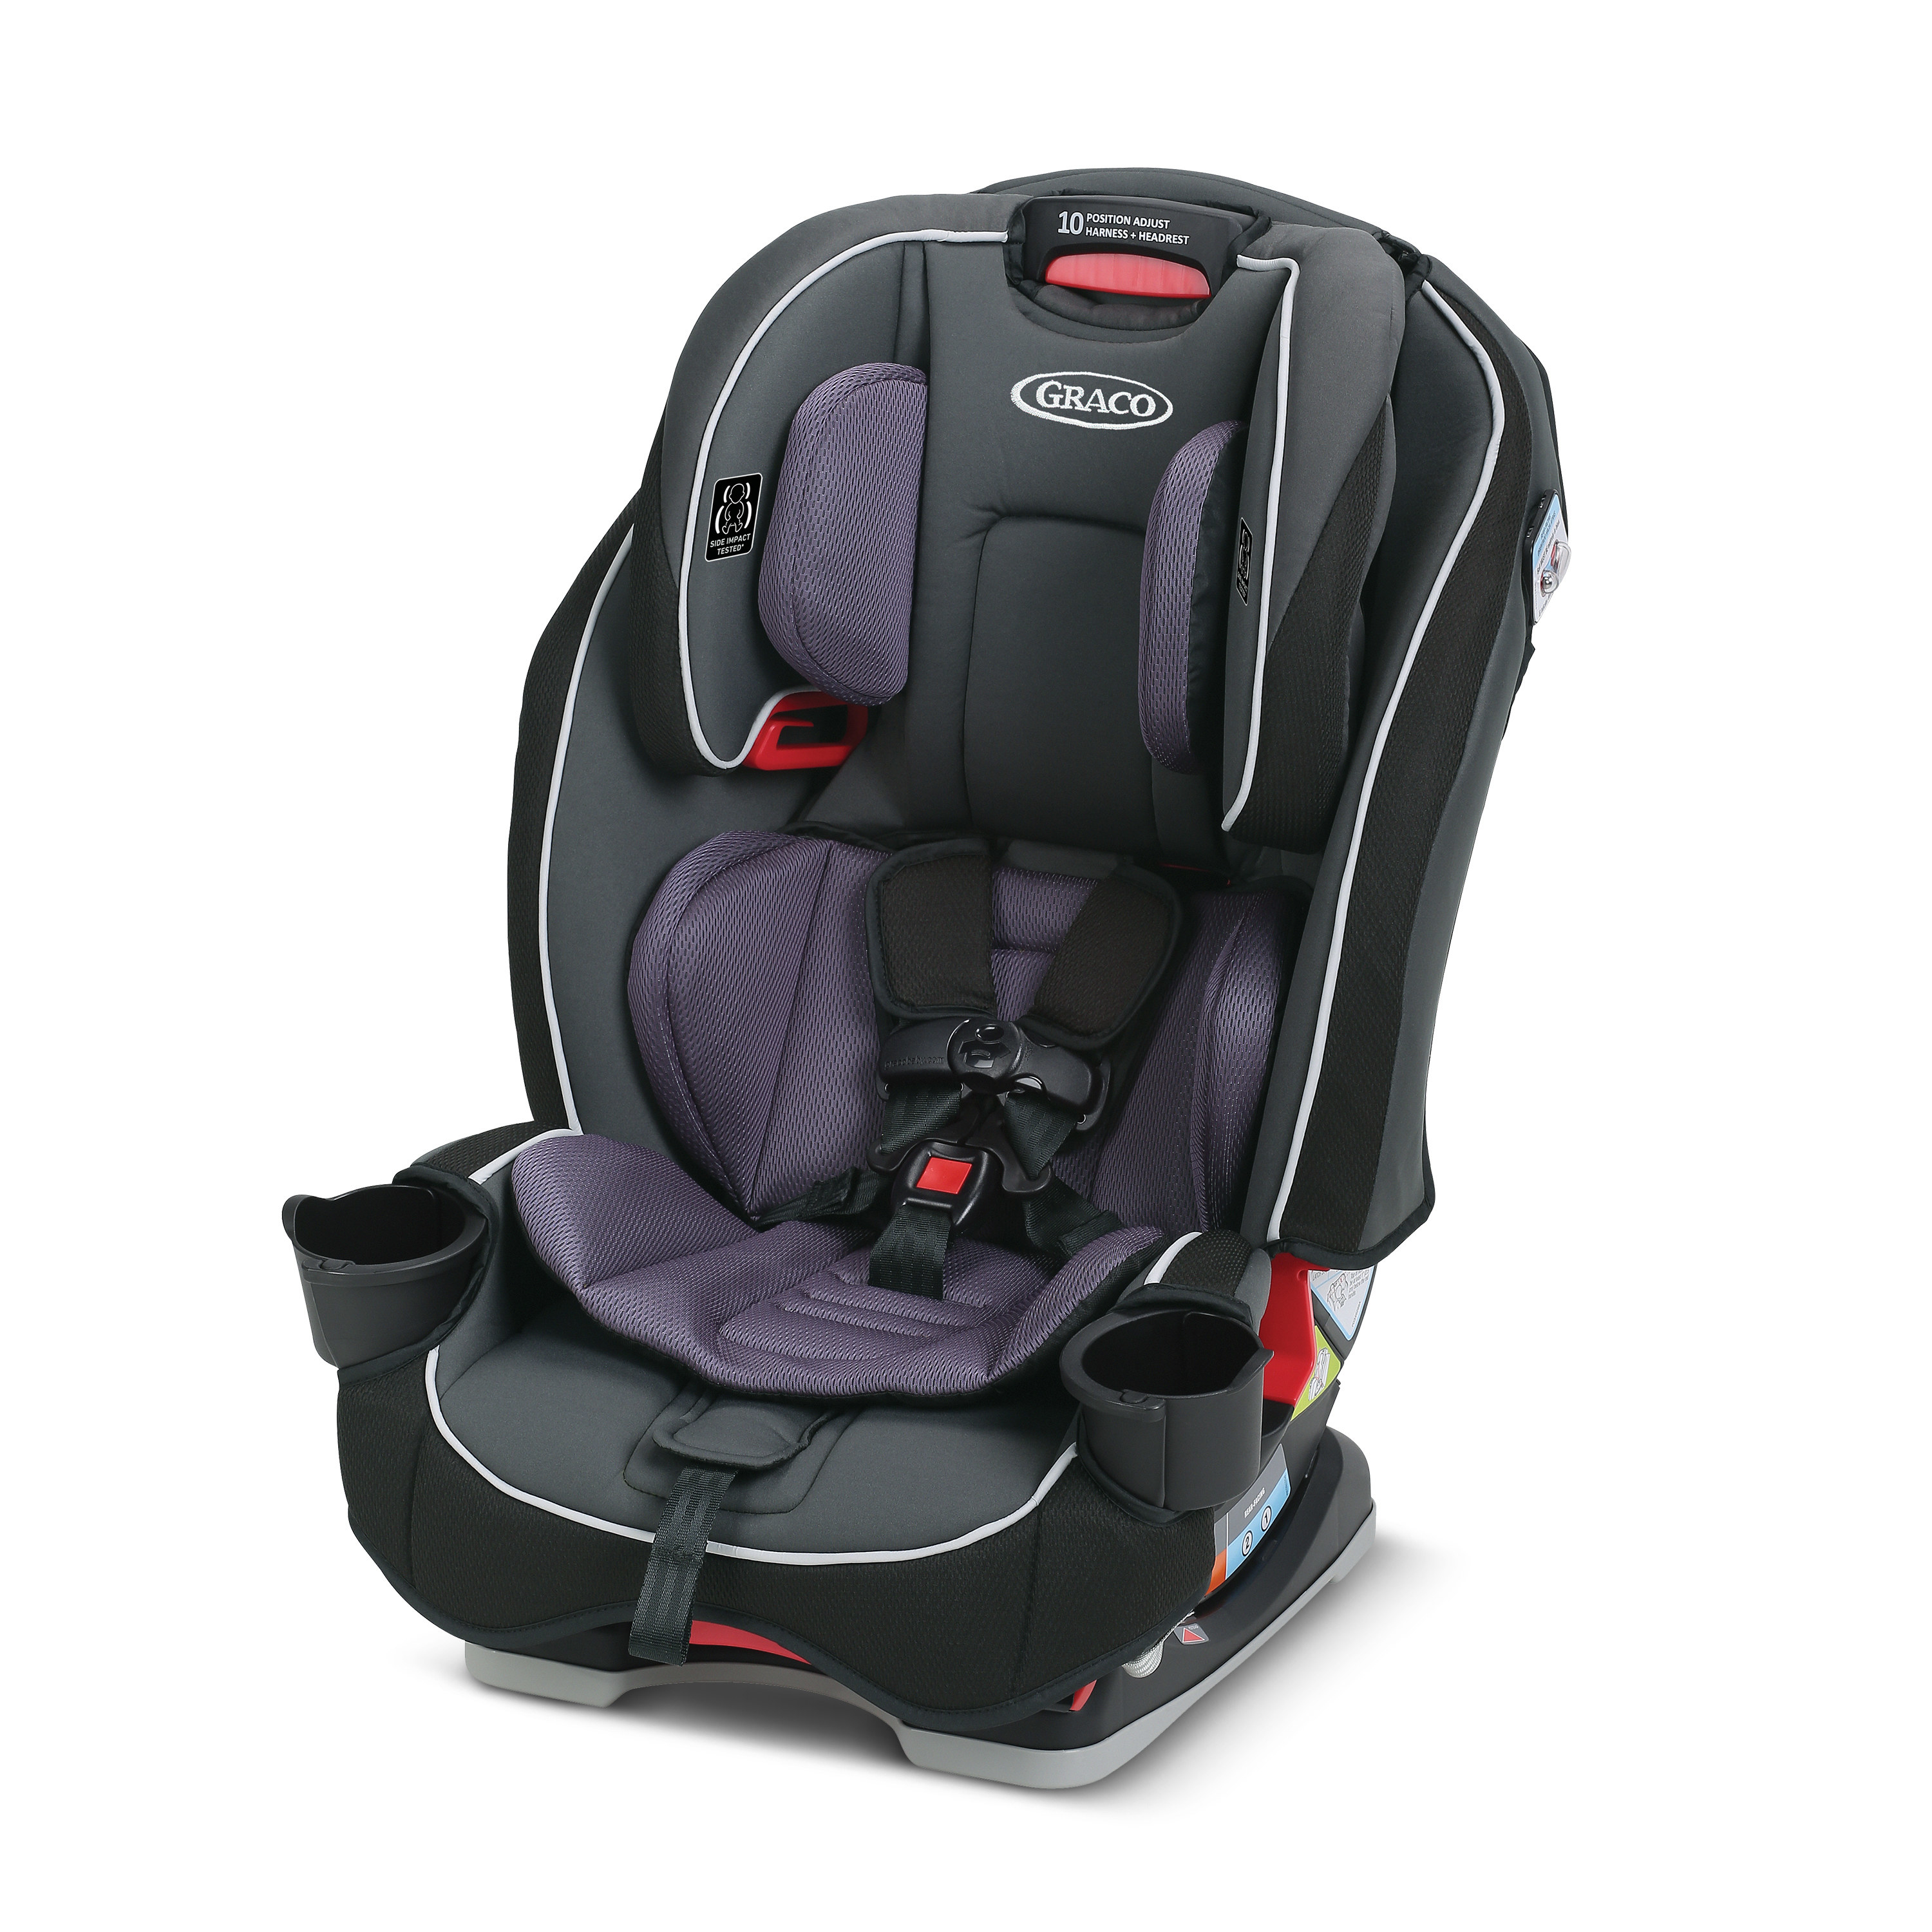 The black and purple car seat.